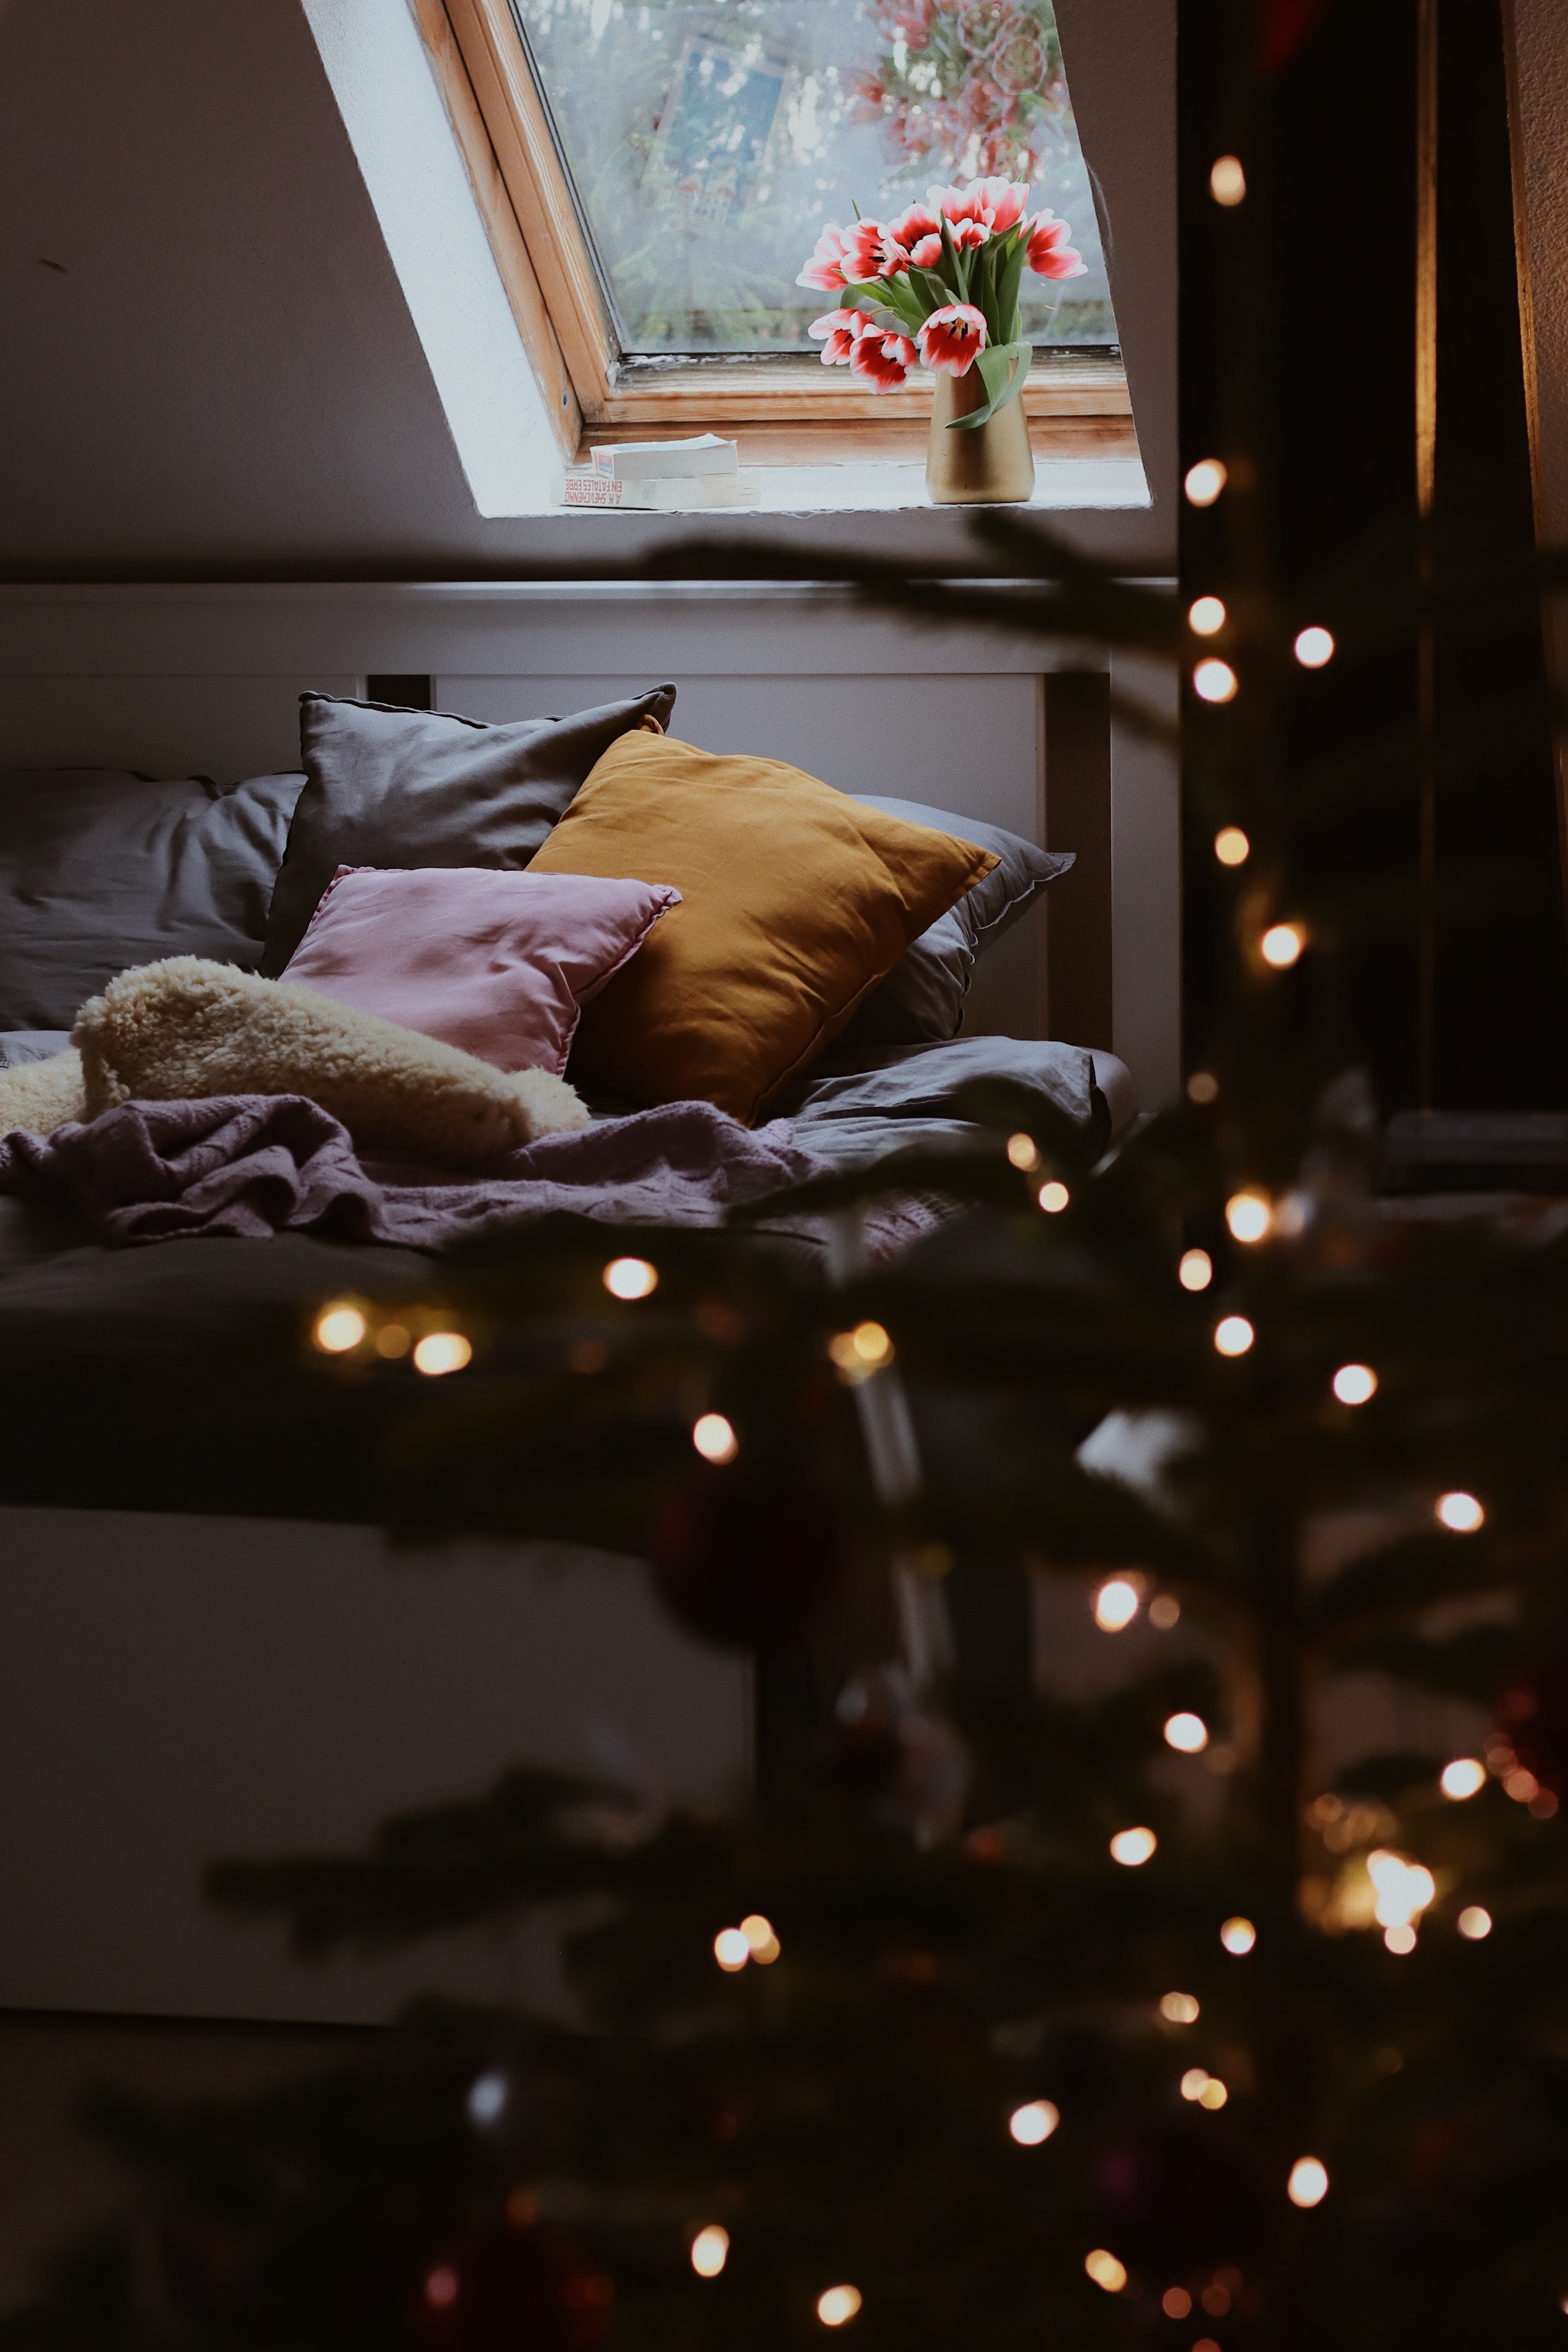 75178 Screensavers and Wallpapers Room for phone. Download Miscellanea, Miscellaneous, Room, Interior, Coziness, Comfort pictures for free